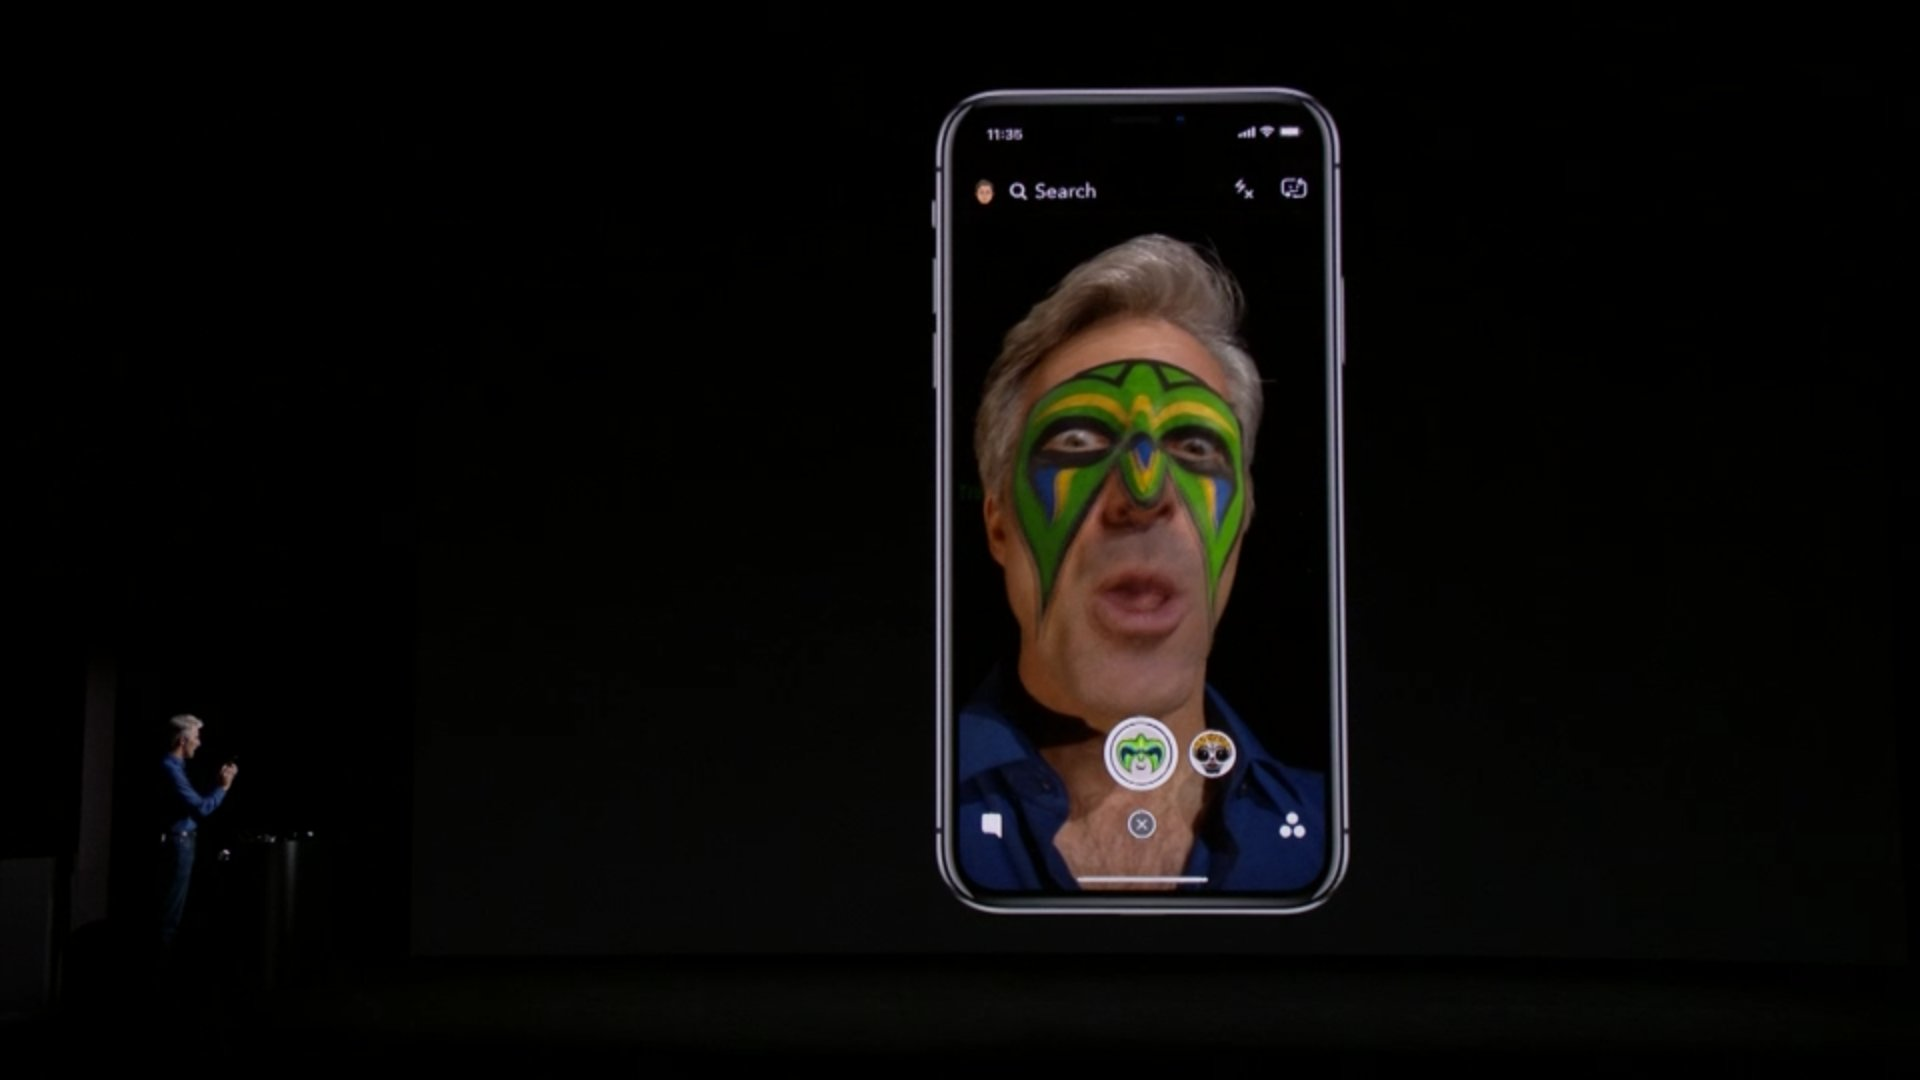 Apple has been working with @Snapchat to improve facial recognition within their app. #AppleEvent https://t.co/CgWBPfOl2h